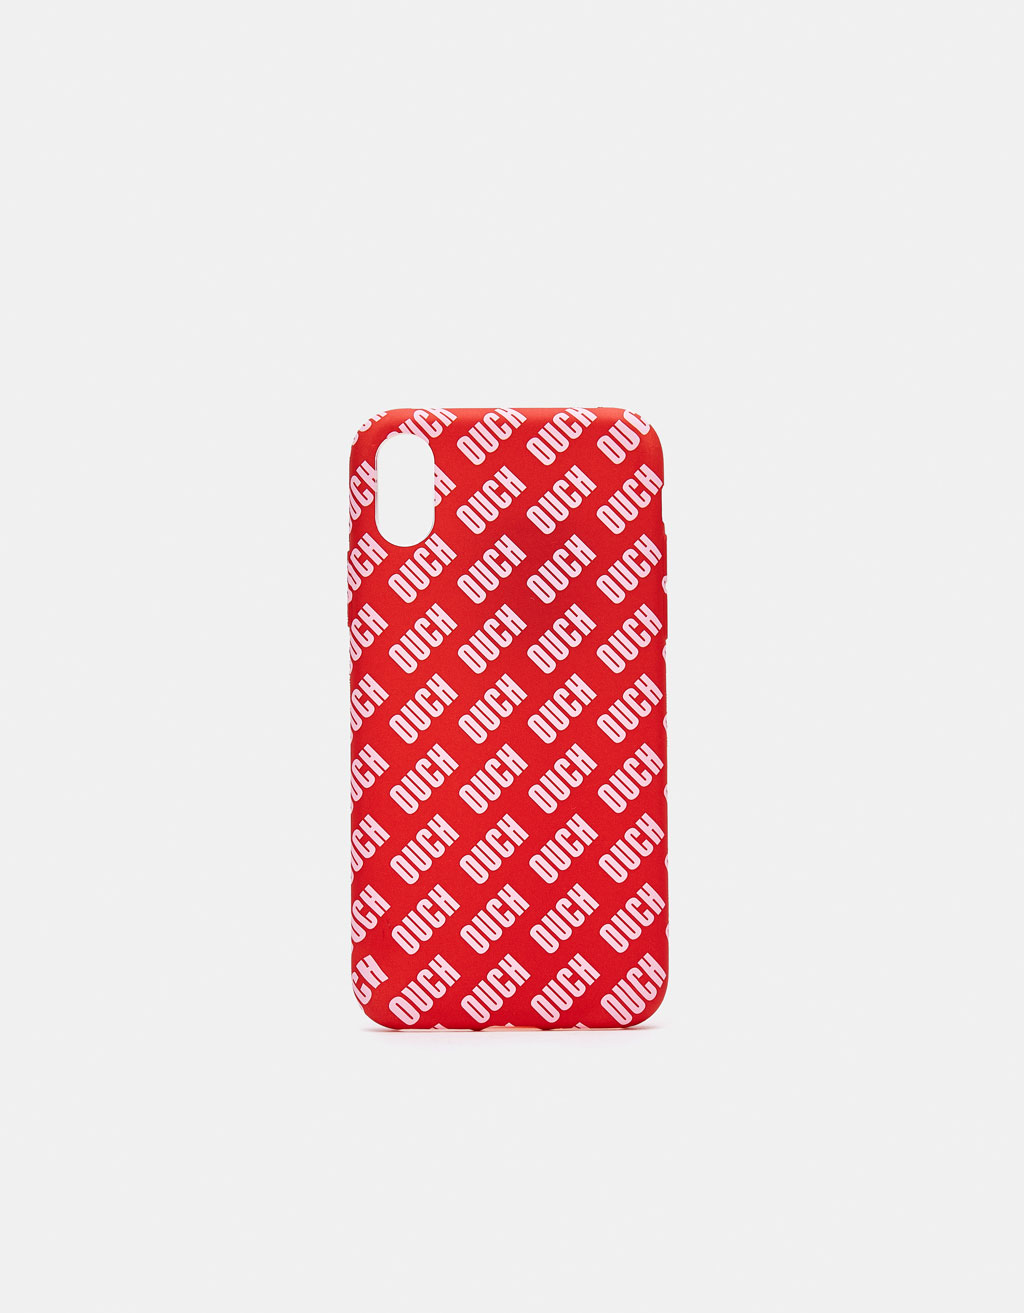 iPhone X case with all-over slogan